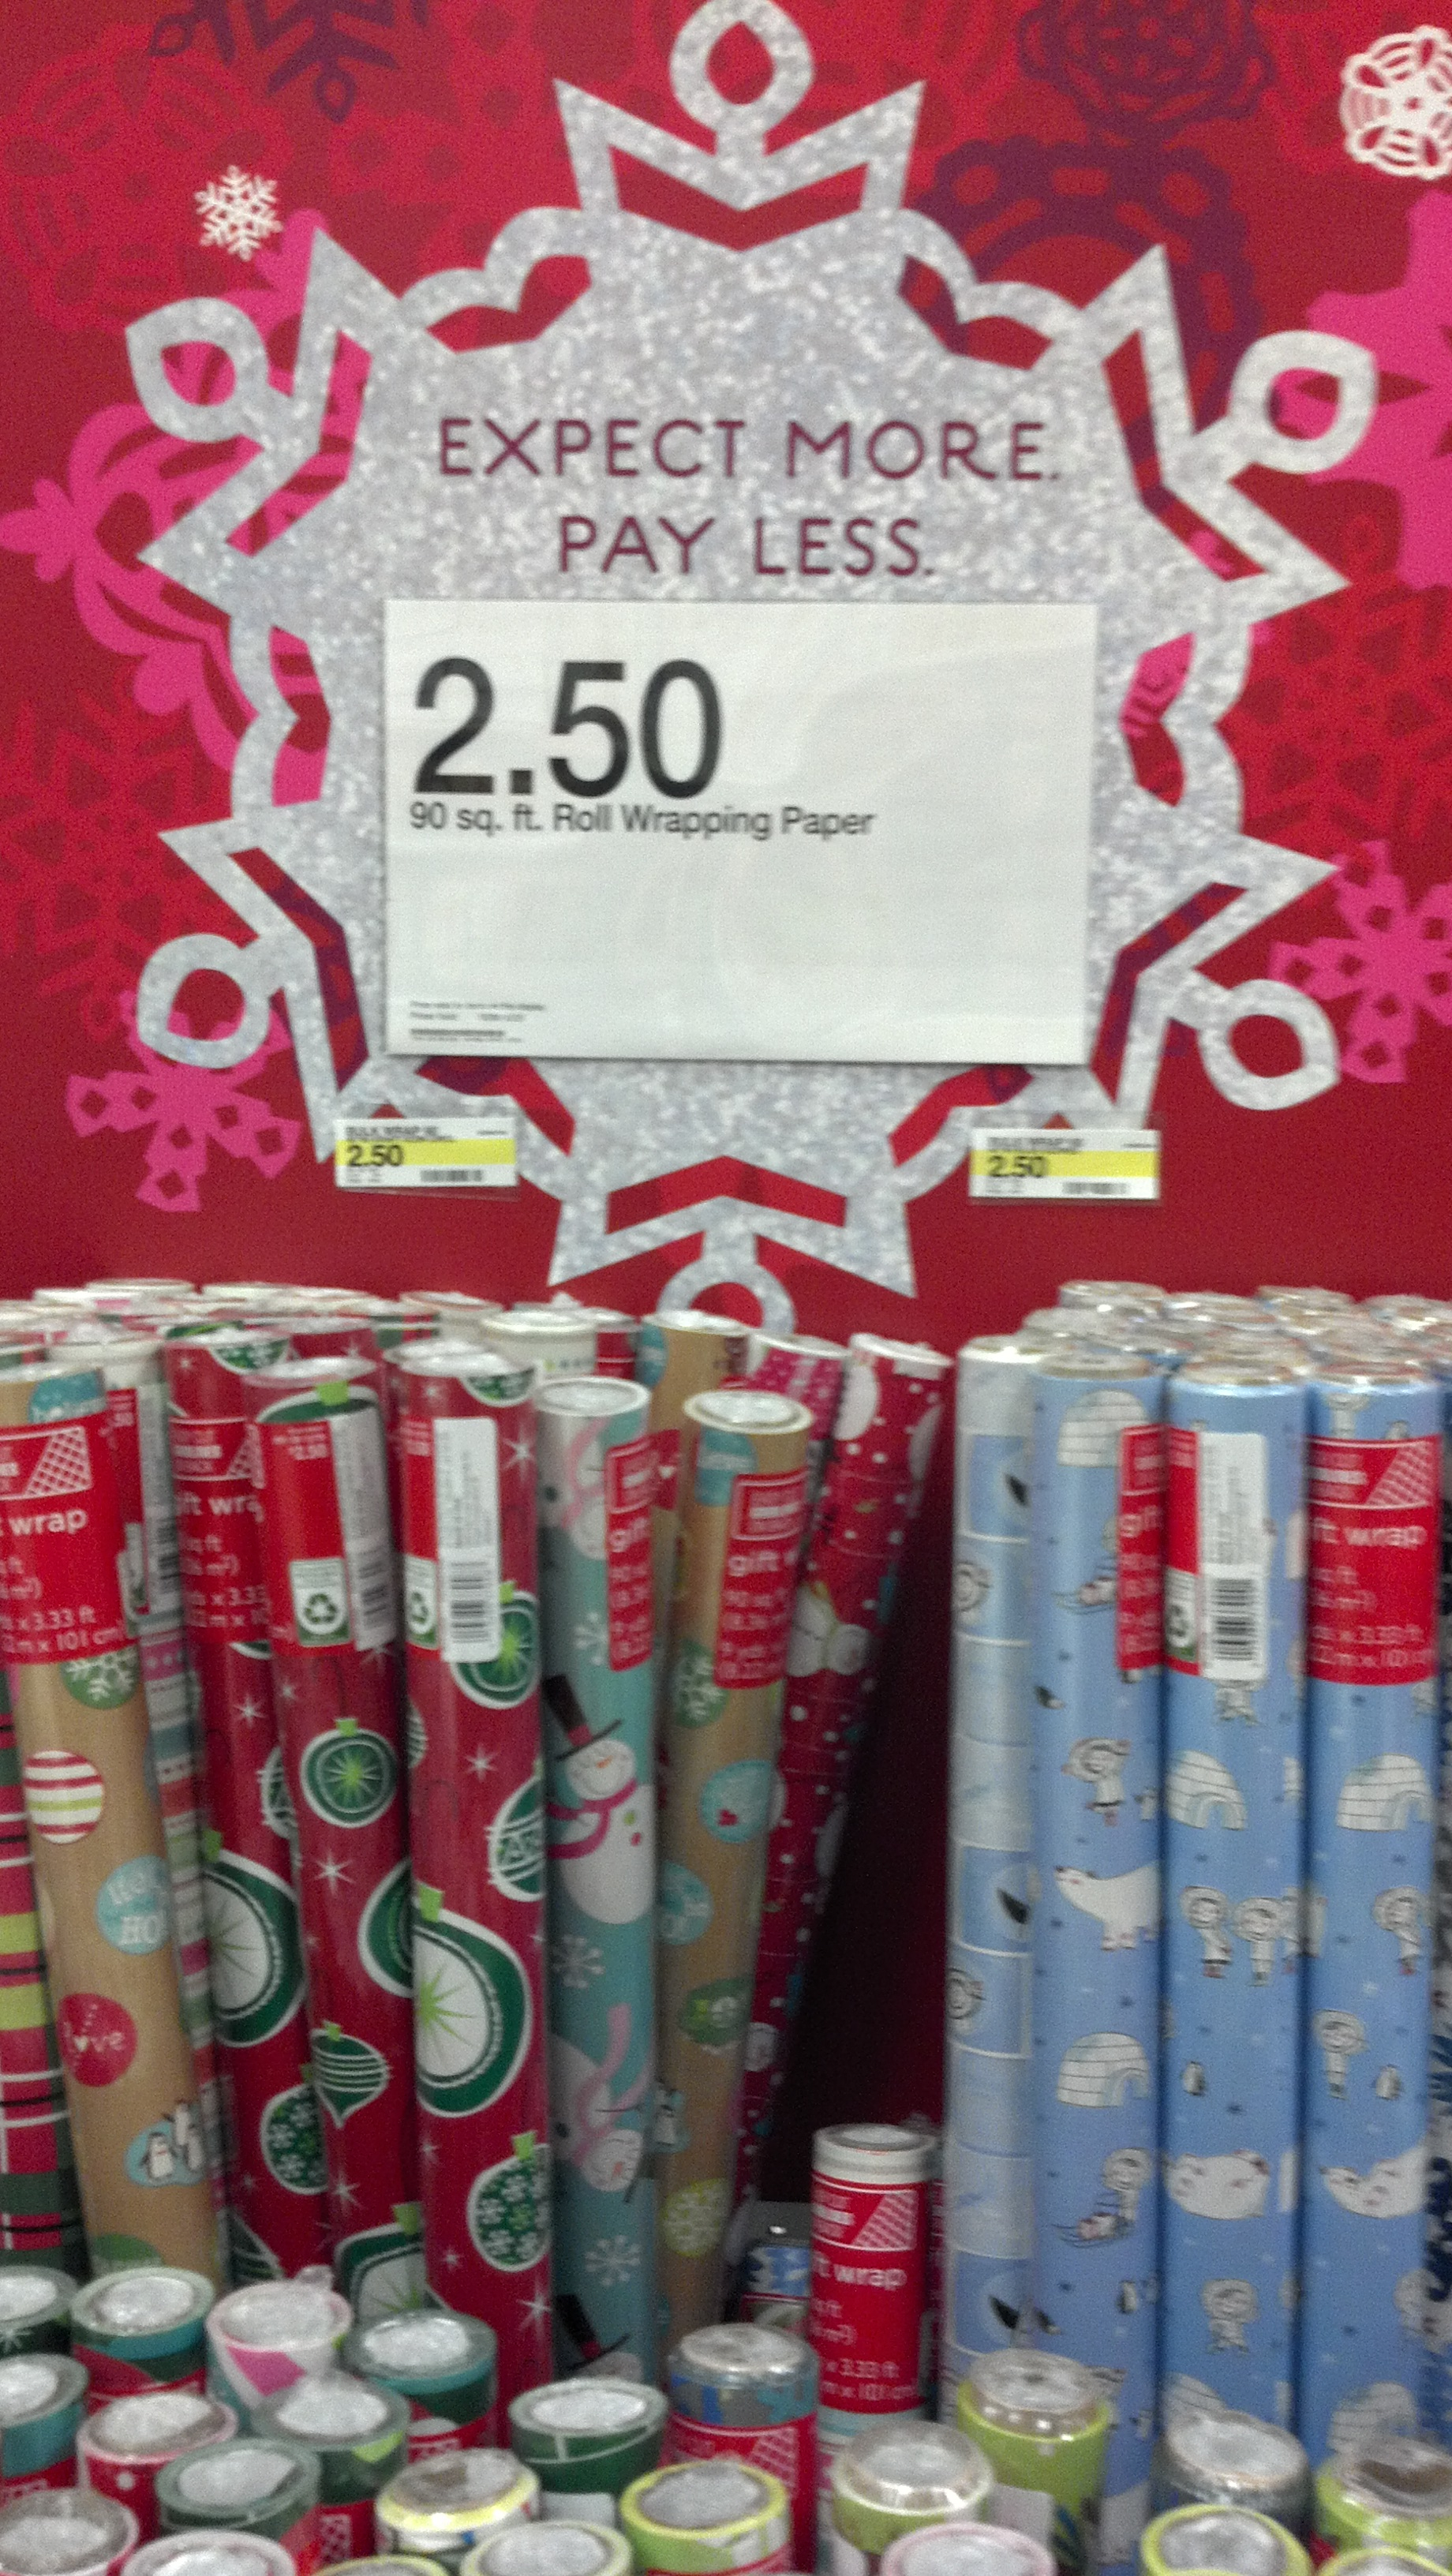 Awesome Wrapping Paper Deals at Target! - Freebies2Deals